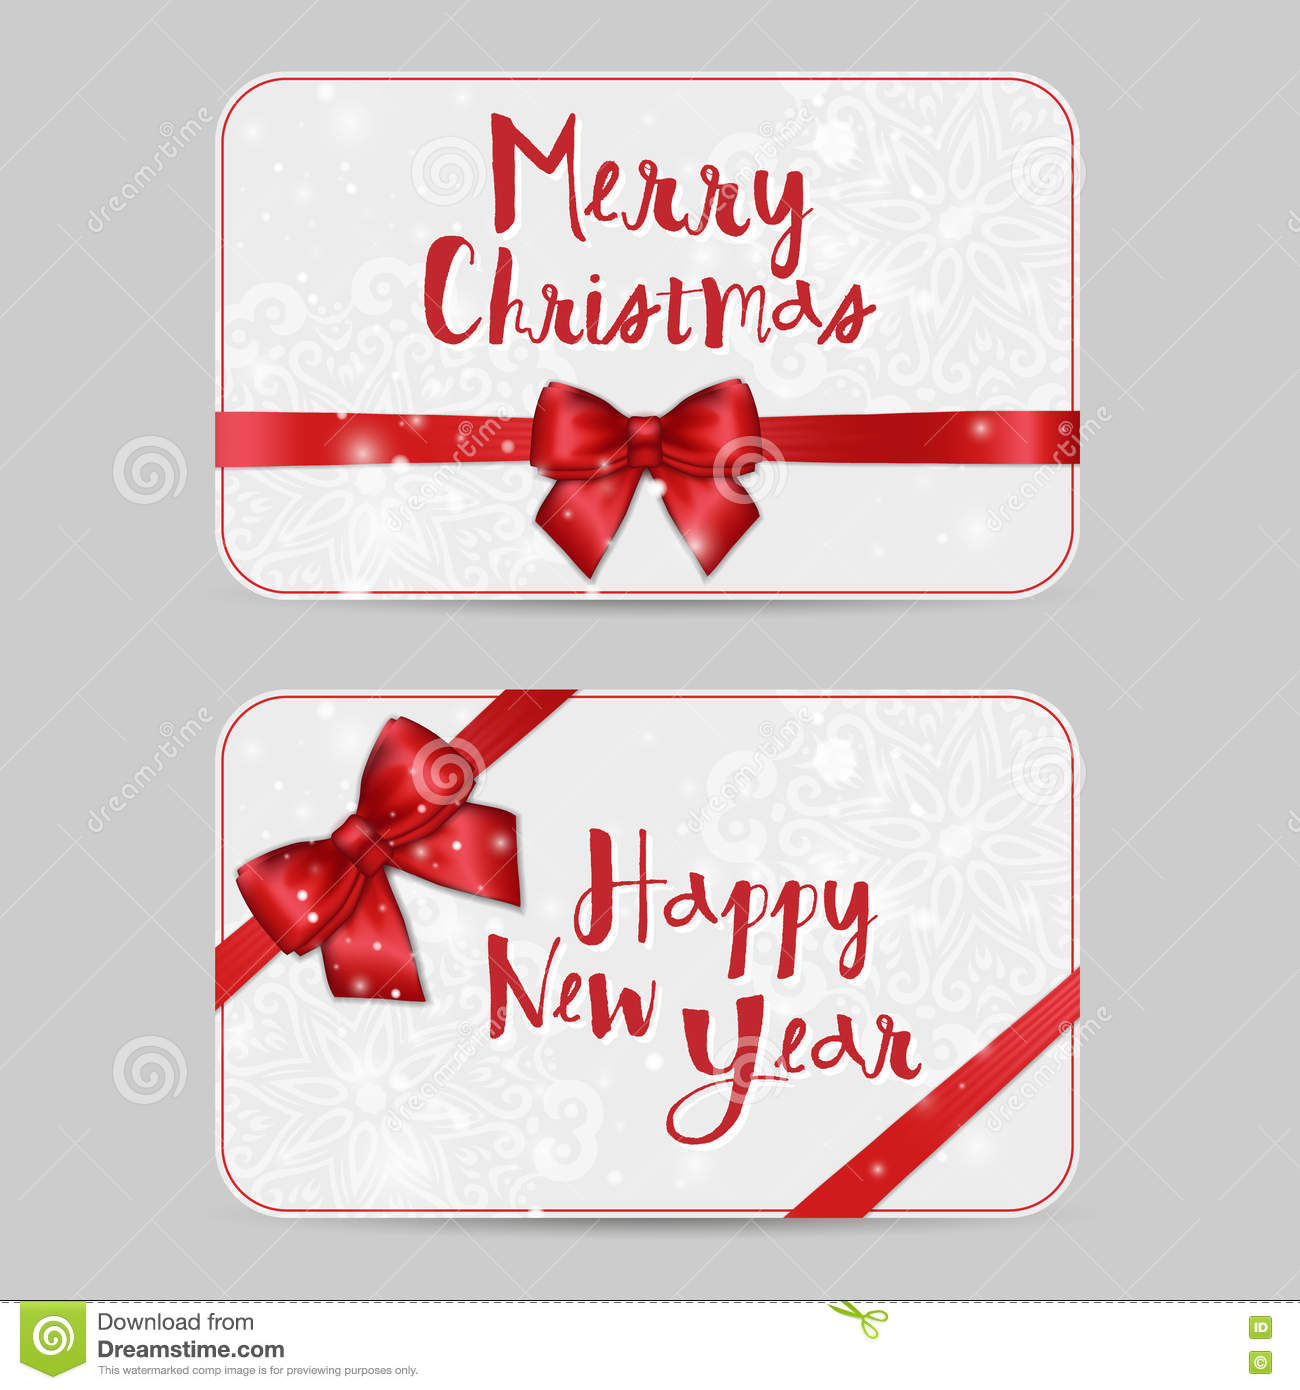 Christmas Ornamental Card Templates With Shiny Holiday Red Satin Ribbon Bow Vector New Year Template